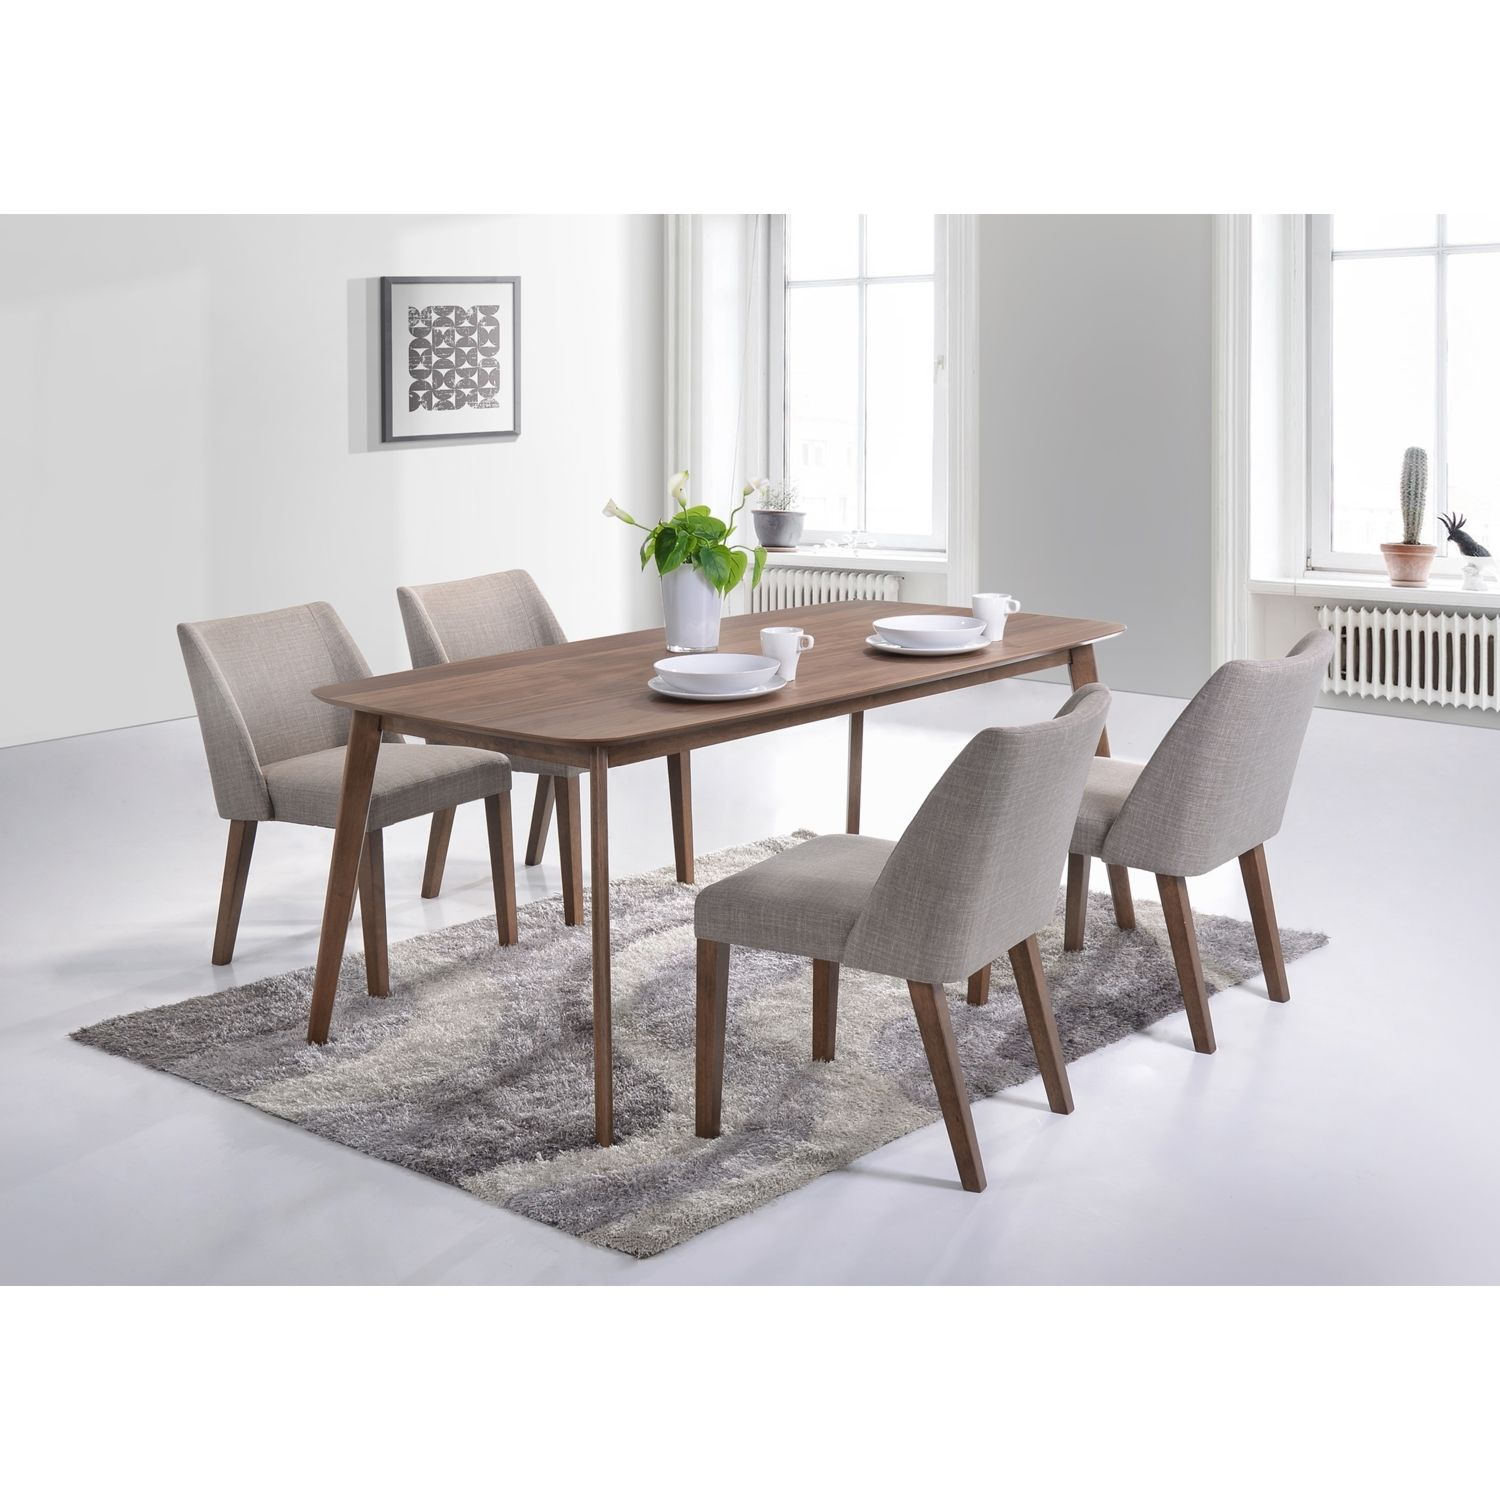 Elba Table And Chairs Set Dining Table Chairs Metal Dining Room Dining Chairs For Sale